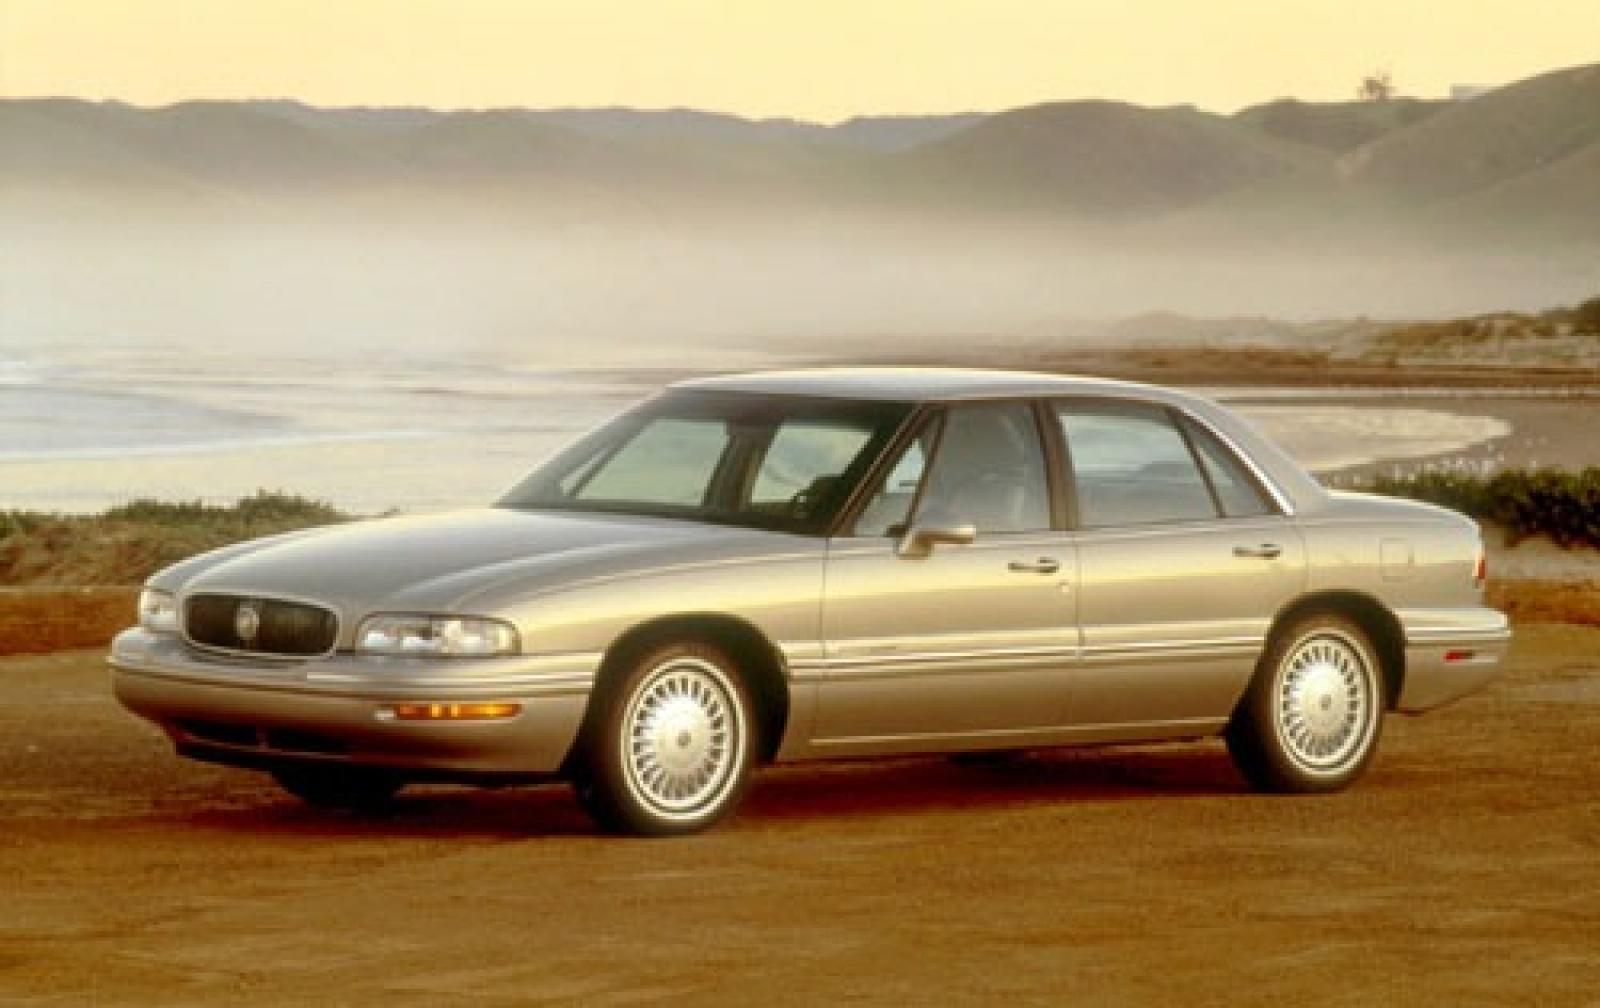 1997 buick lesabre information and photos zombiedrive. Black Bedroom Furniture Sets. Home Design Ideas